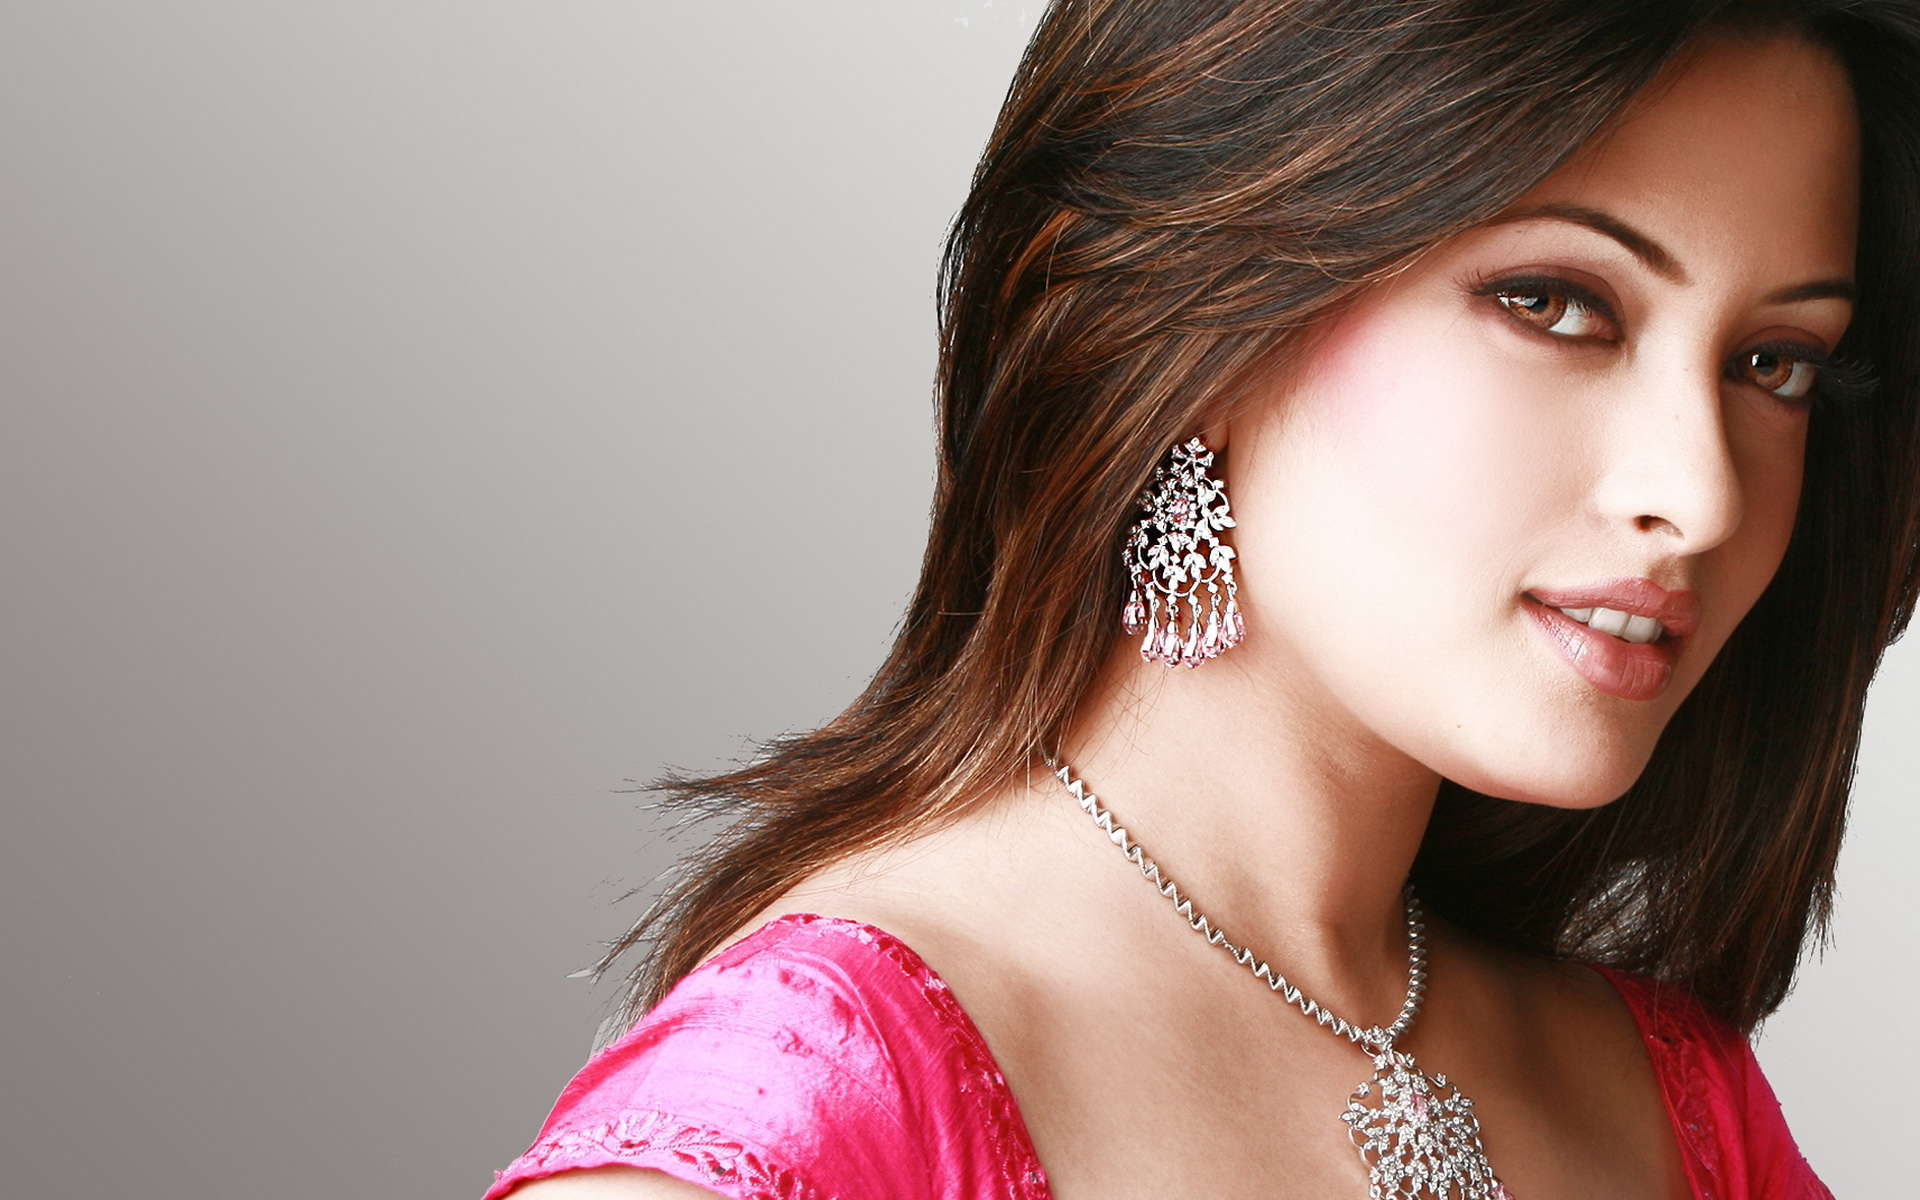 Collection of Beautiful Girl Hd Wallpaper on HDWallpapers